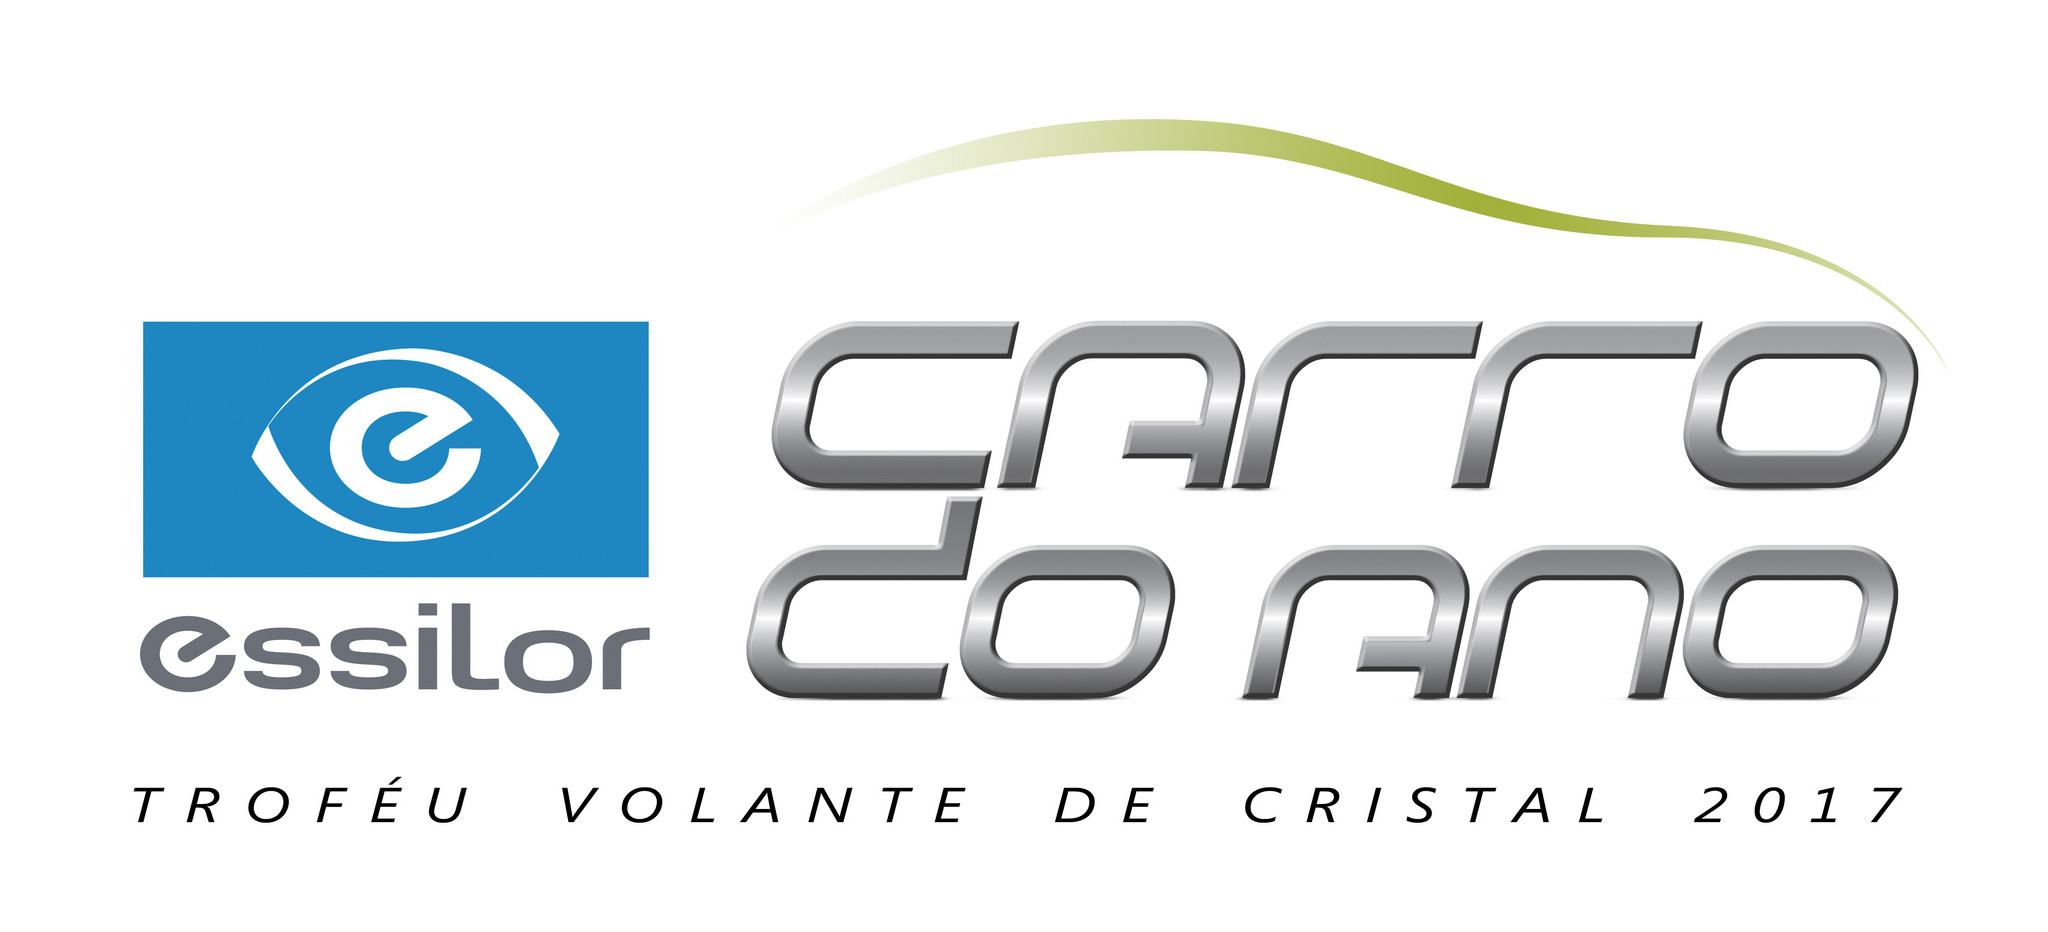 Logotipo_Essilor Carro do Ano 2017.jpg